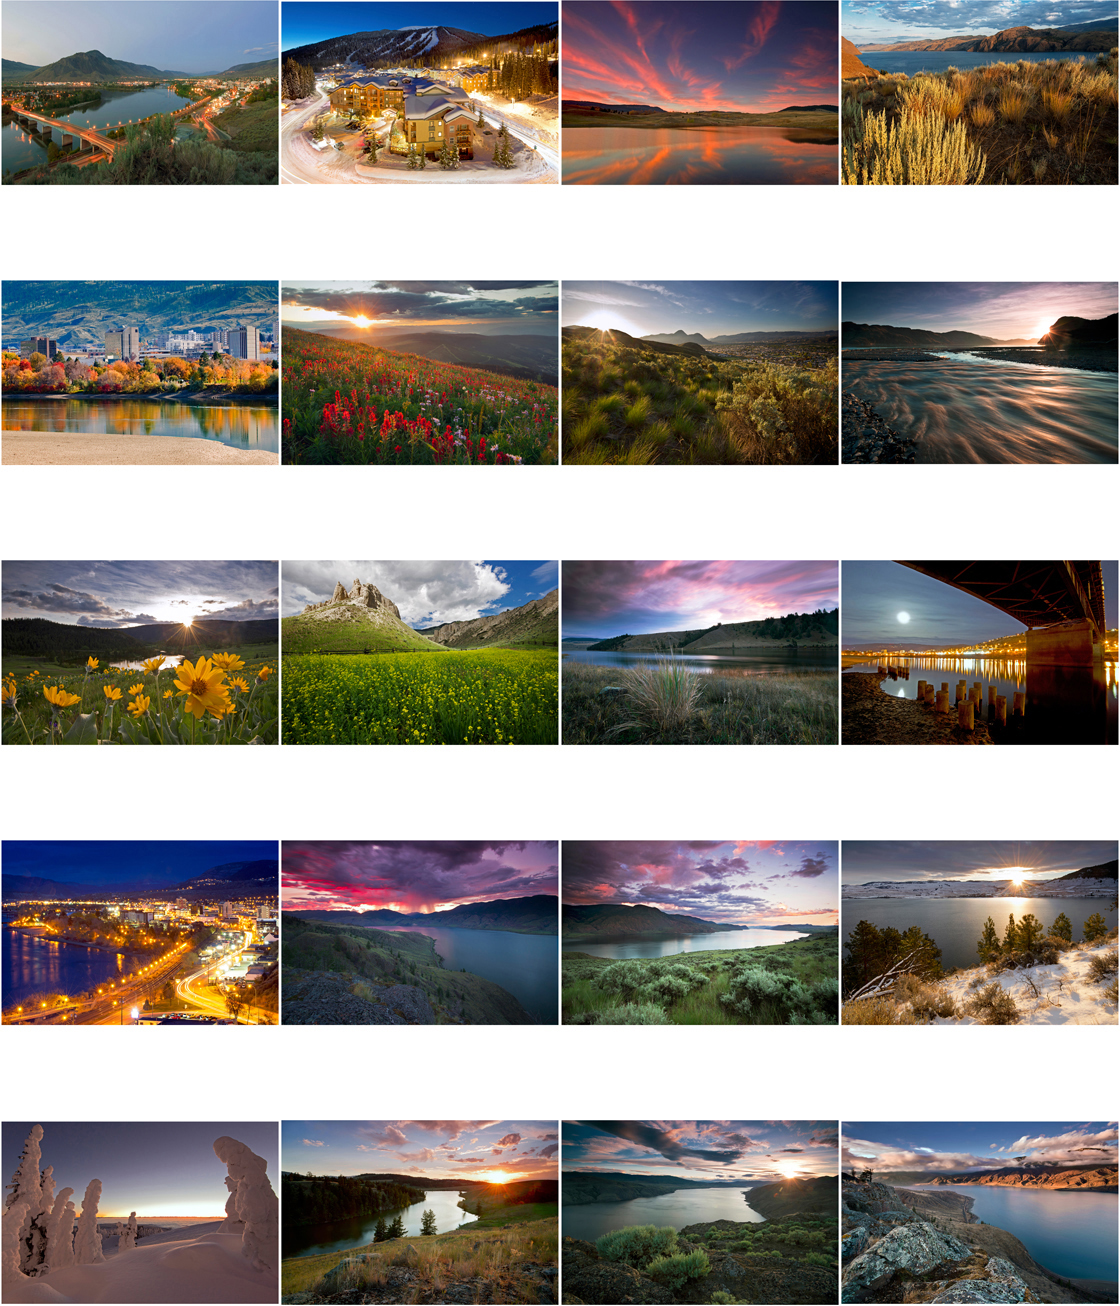 Kamloops and area city and landscape prints for commercial use in the form of web, brochure, print or multi-media.